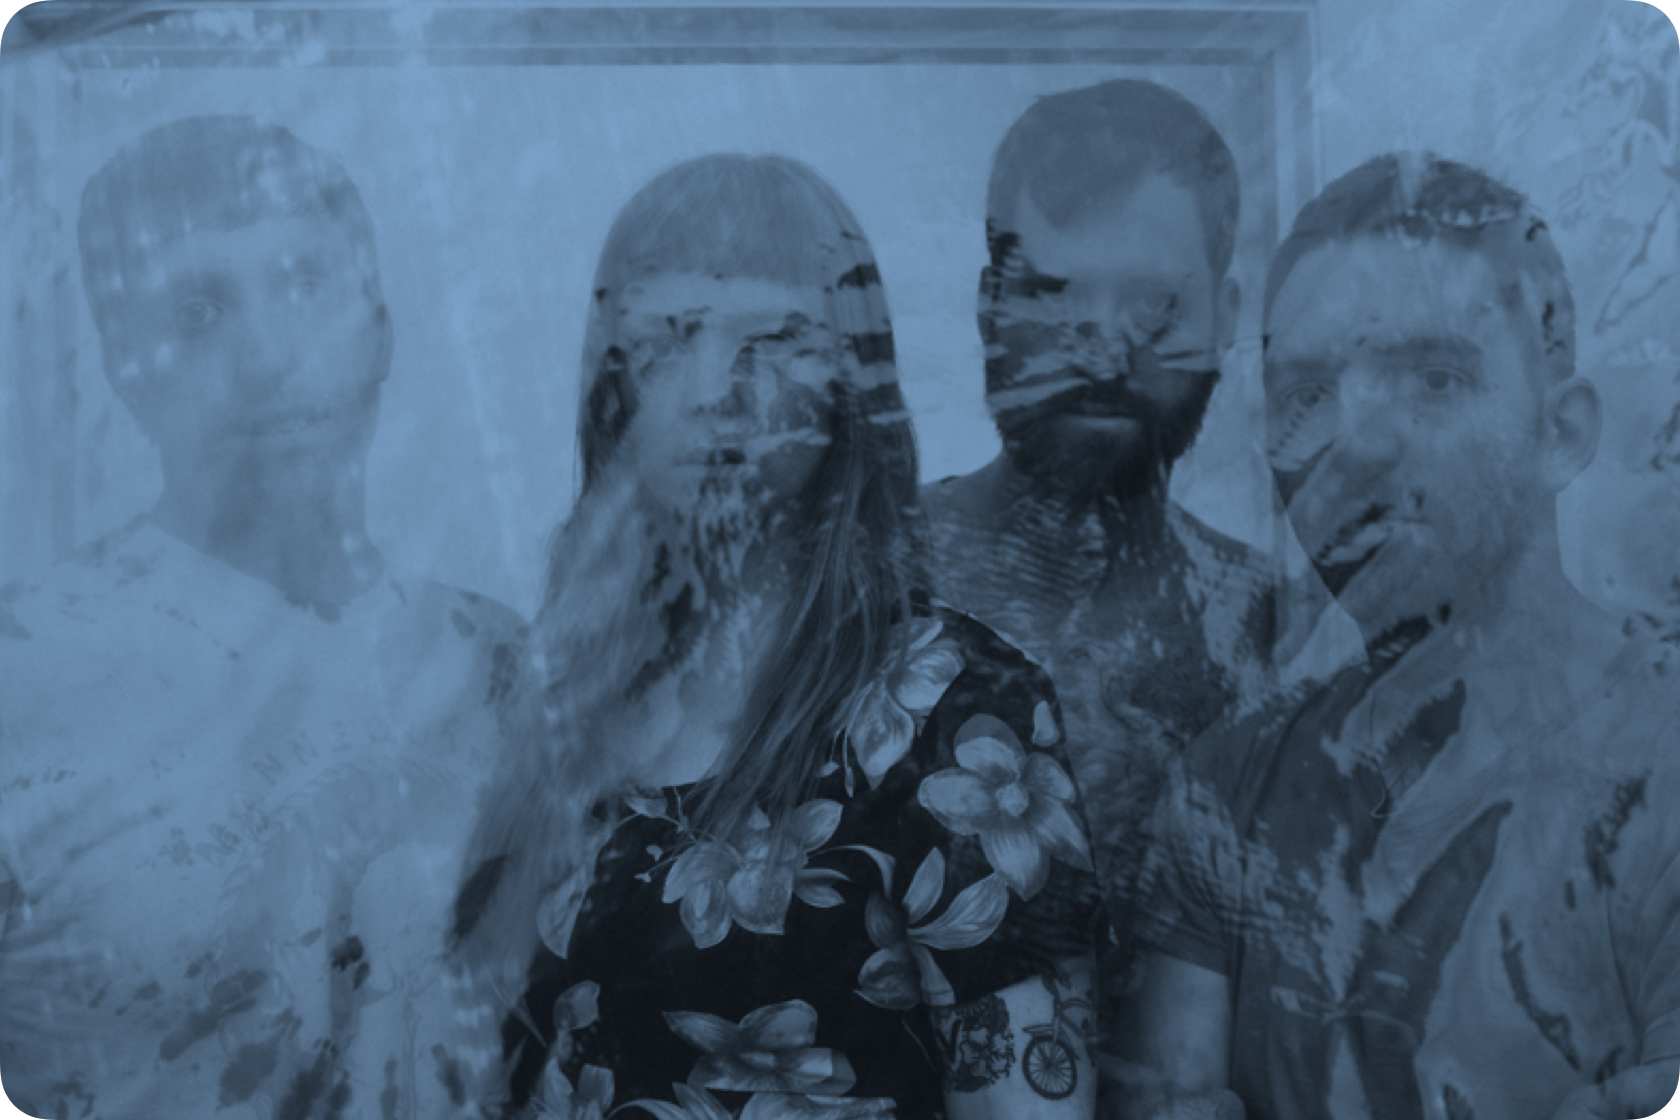 Members of Melkbelly with a floral image overlayed